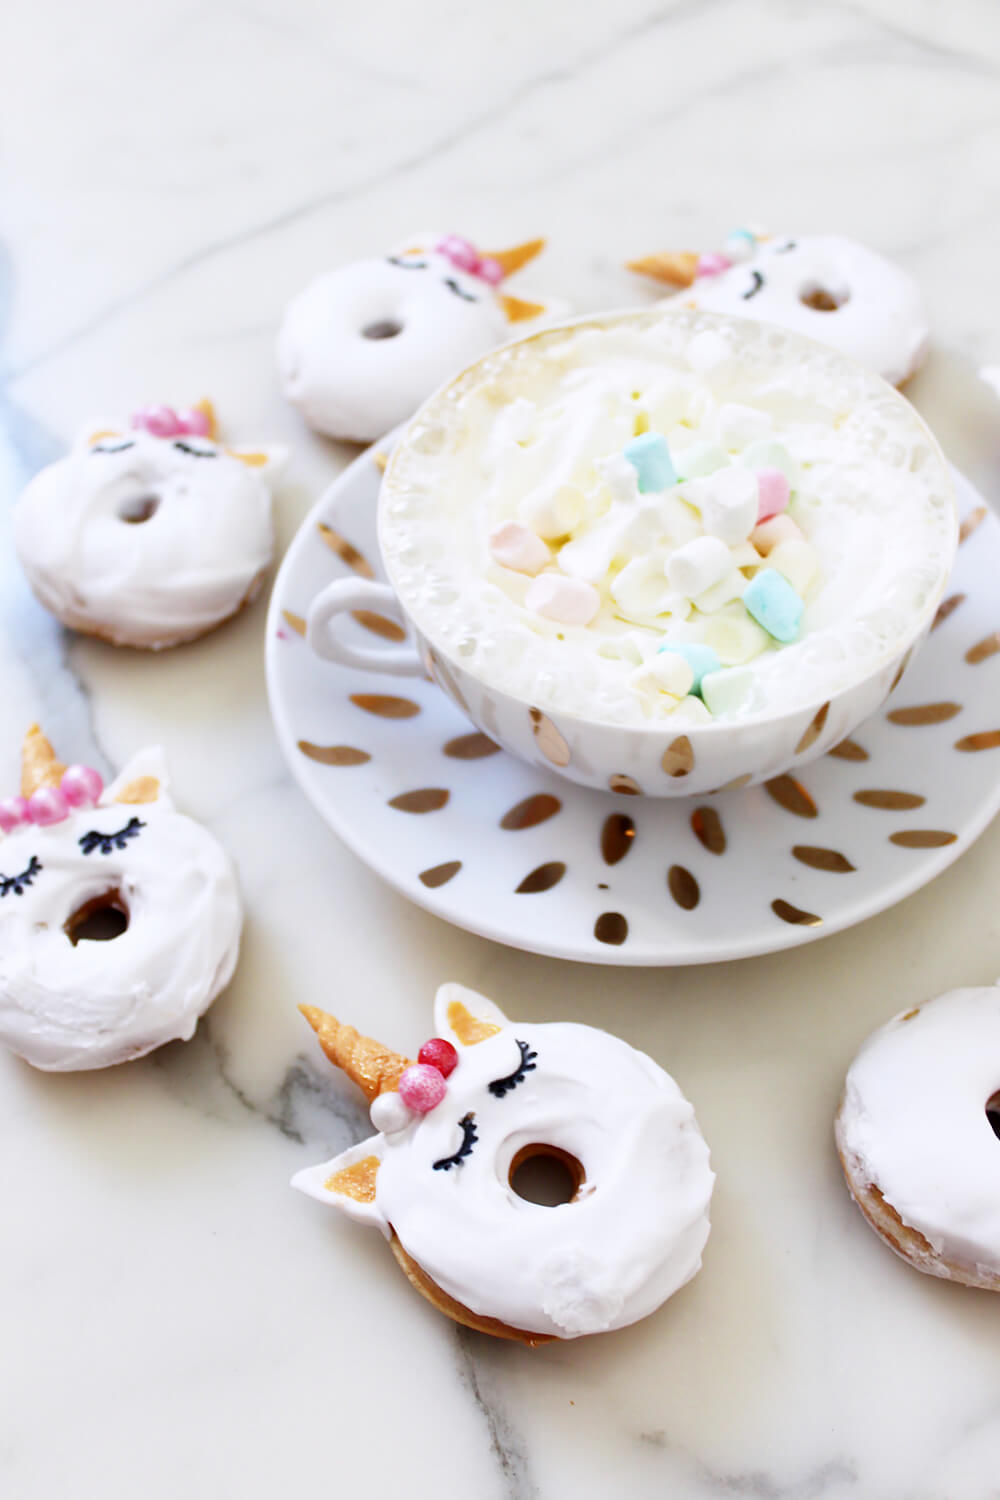 DIY-Mini-Donuts-backen-Rezept-Einhorn-Unicorn-DIY-Blog-5